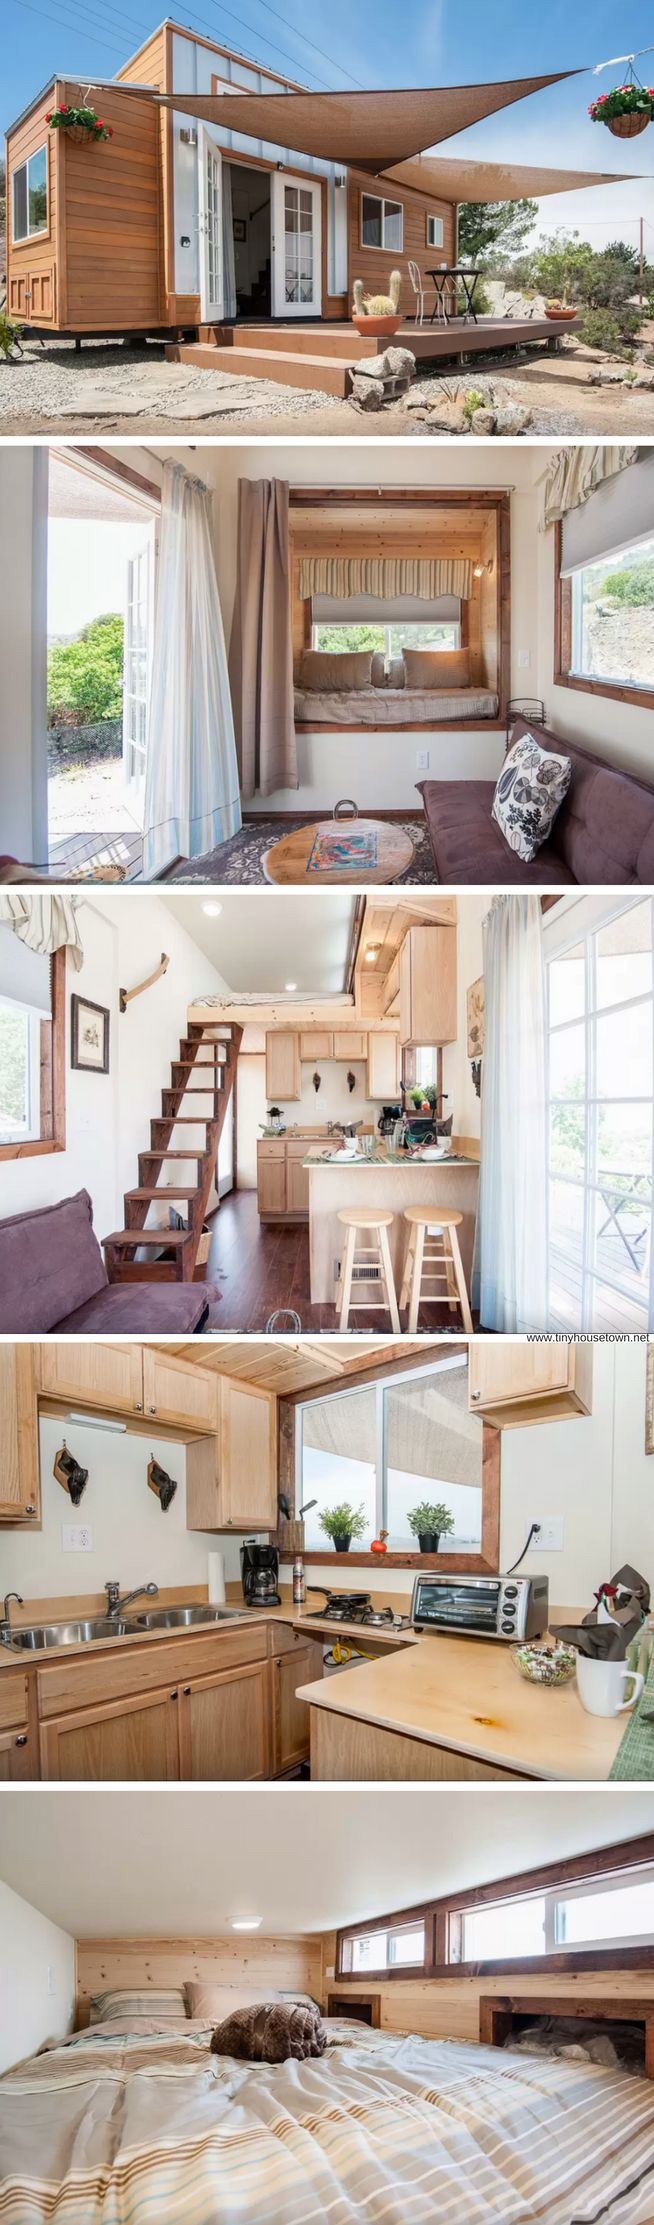 Small beach cottage interior on tiny house plans with enclosed porch - Porch Awnings Idea Is Amazing The Zen Cottage A Socal Tiny House With A Comfortable Modern Style